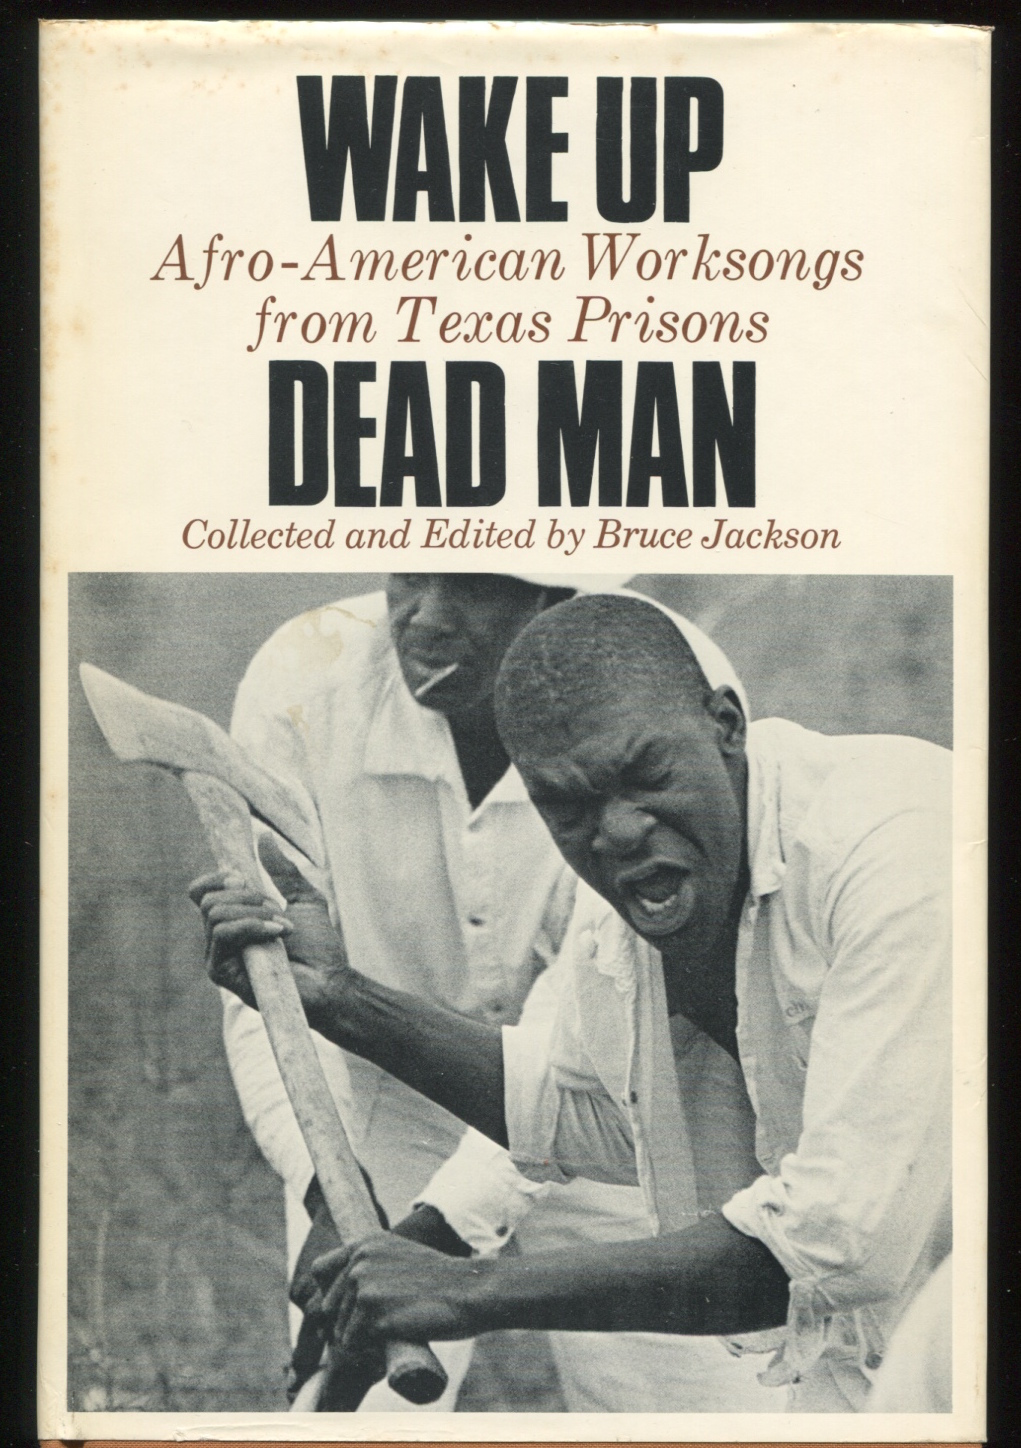 Wake Up Dead Man: Afro-American Worksongs from Texas Prisons. Collected by Bruce Jackson.